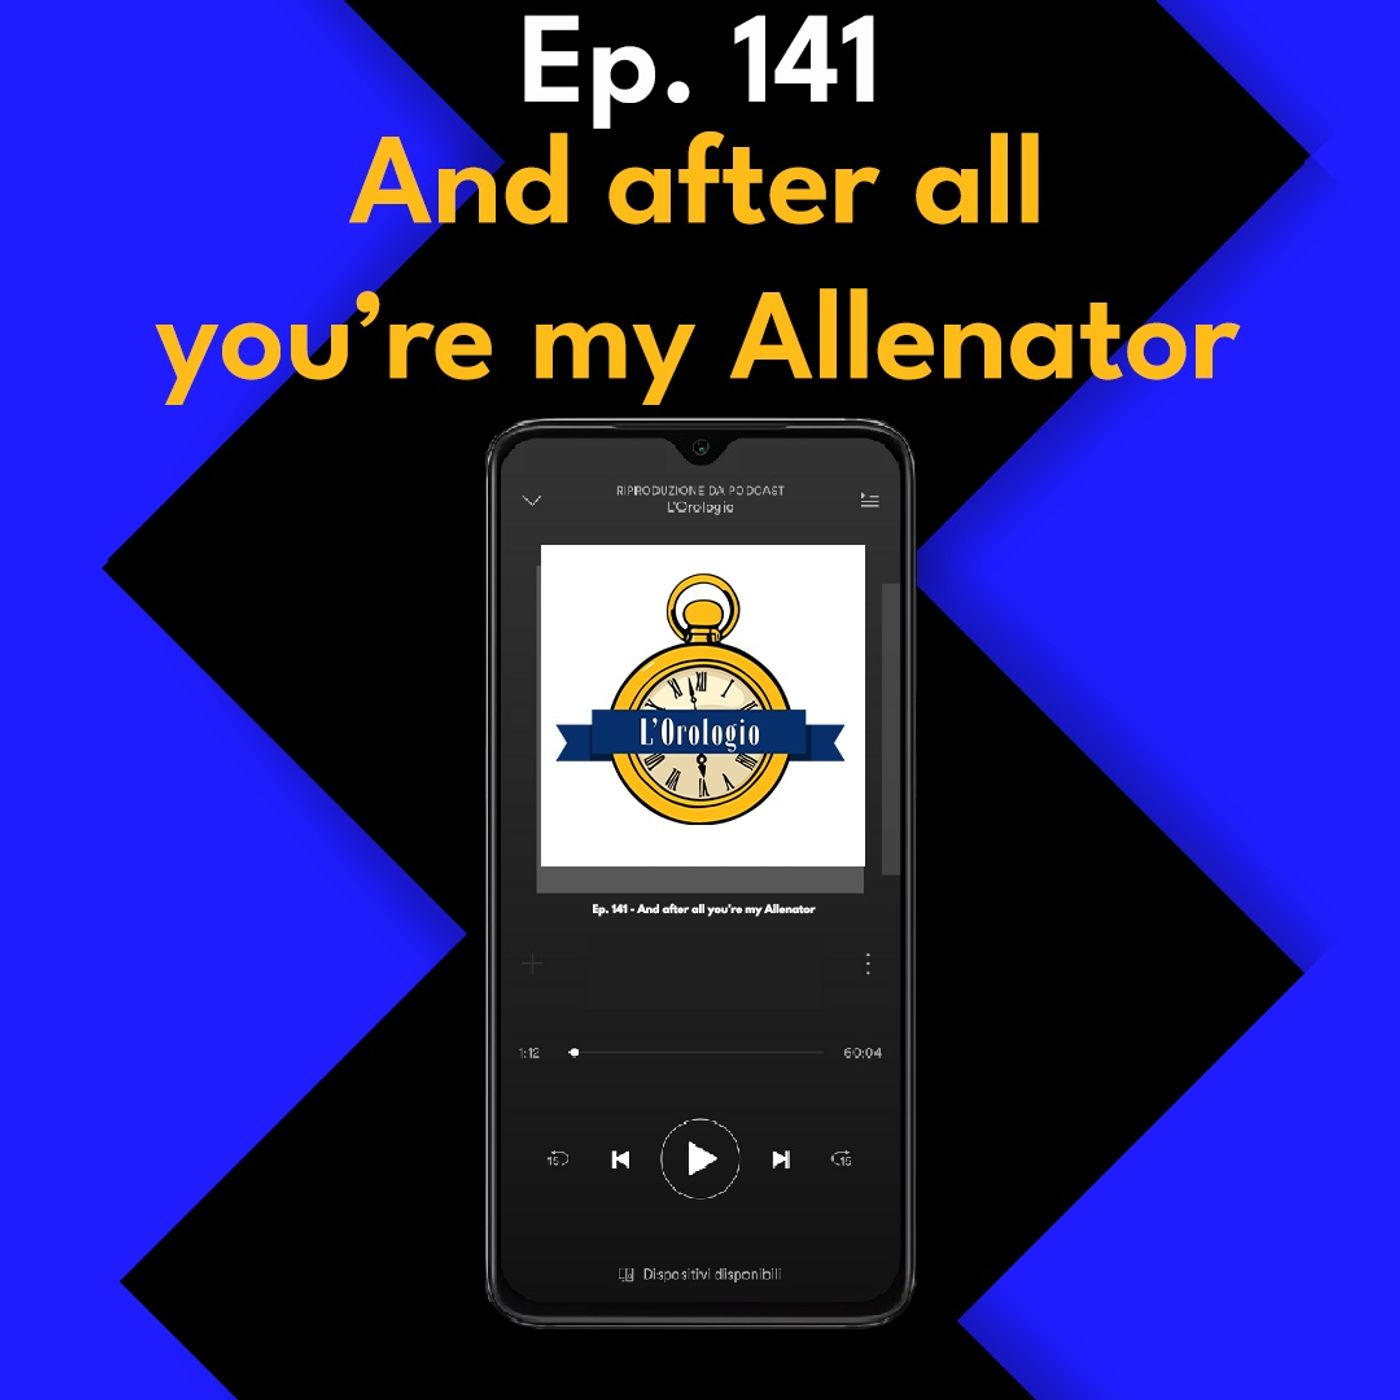 Ep. 141 - And after all you're my Allenator